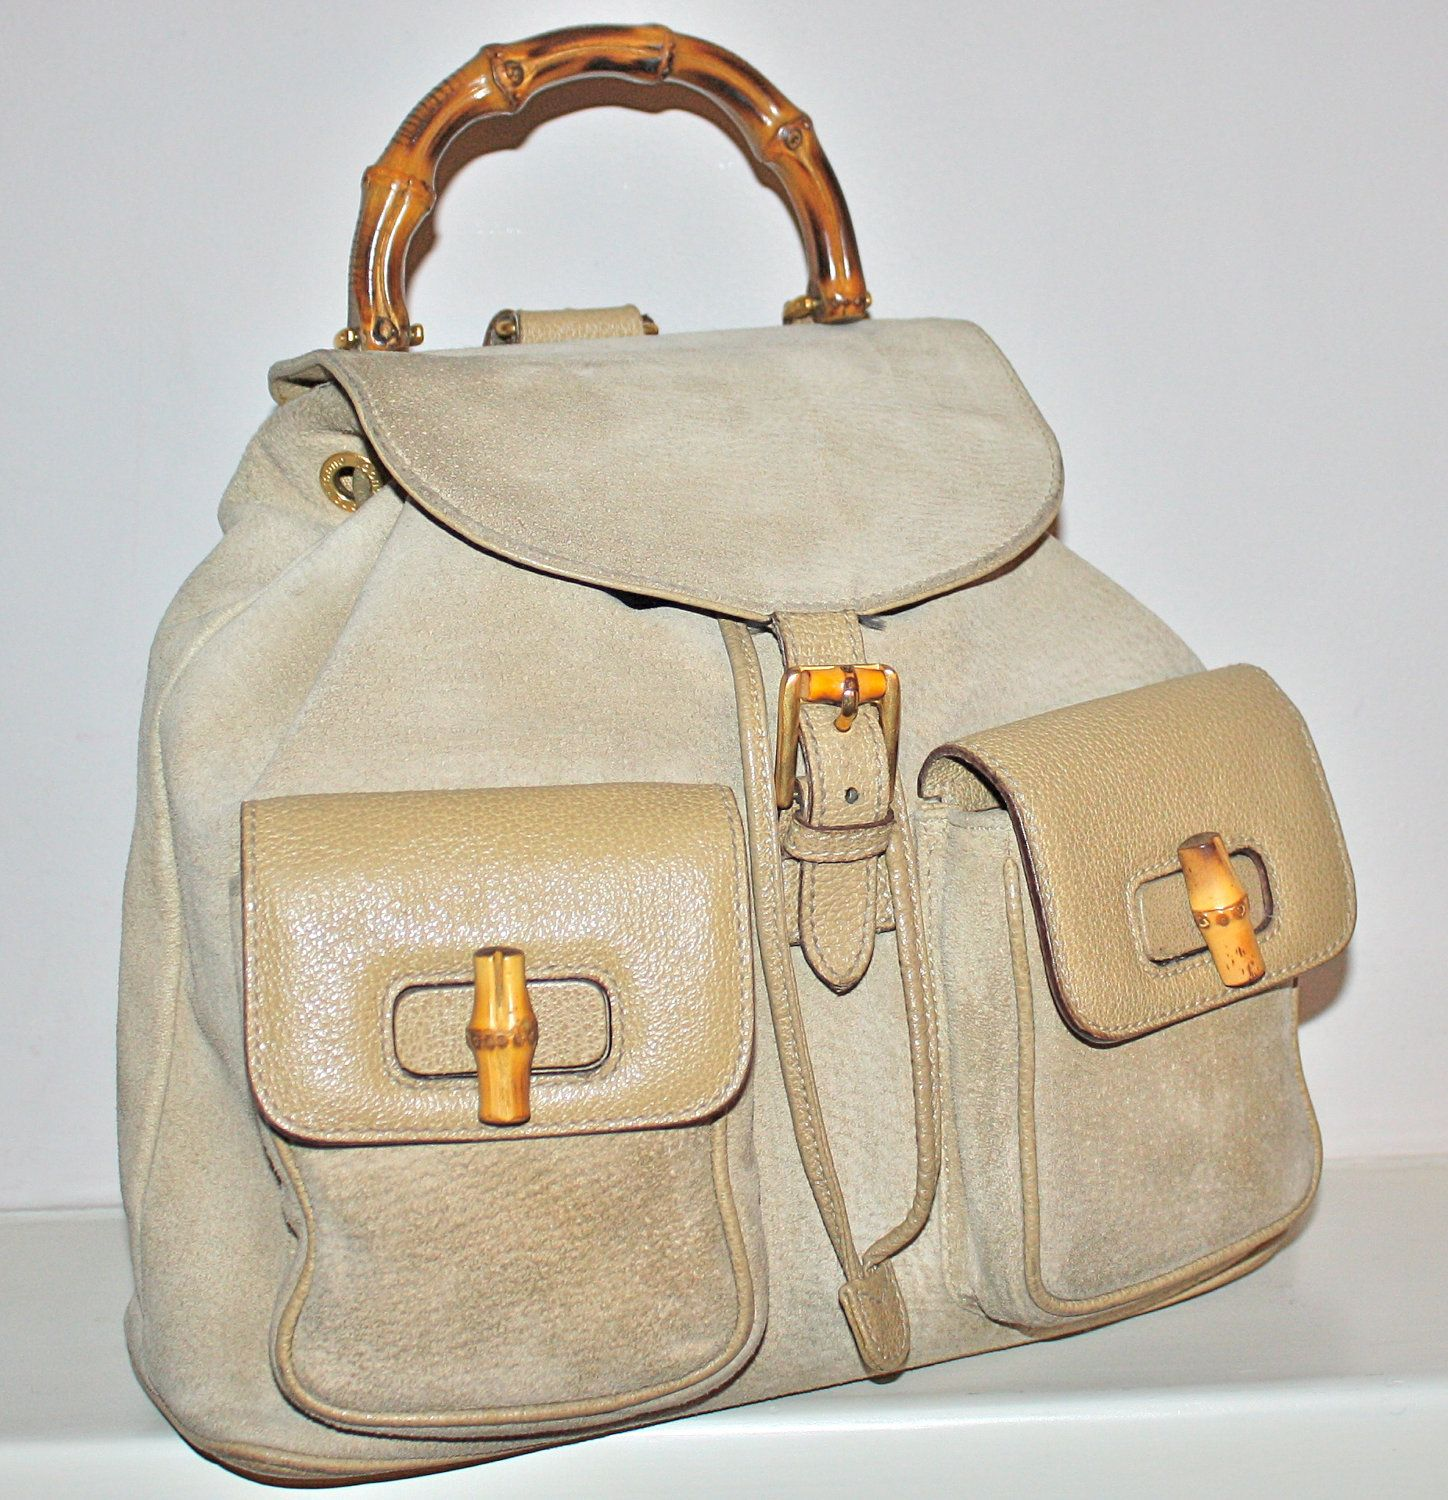 7e500a937aeb VINTAGE GUCCI BACKPACK Authentic Tan Suede Leather Bamboo Rucksack ...